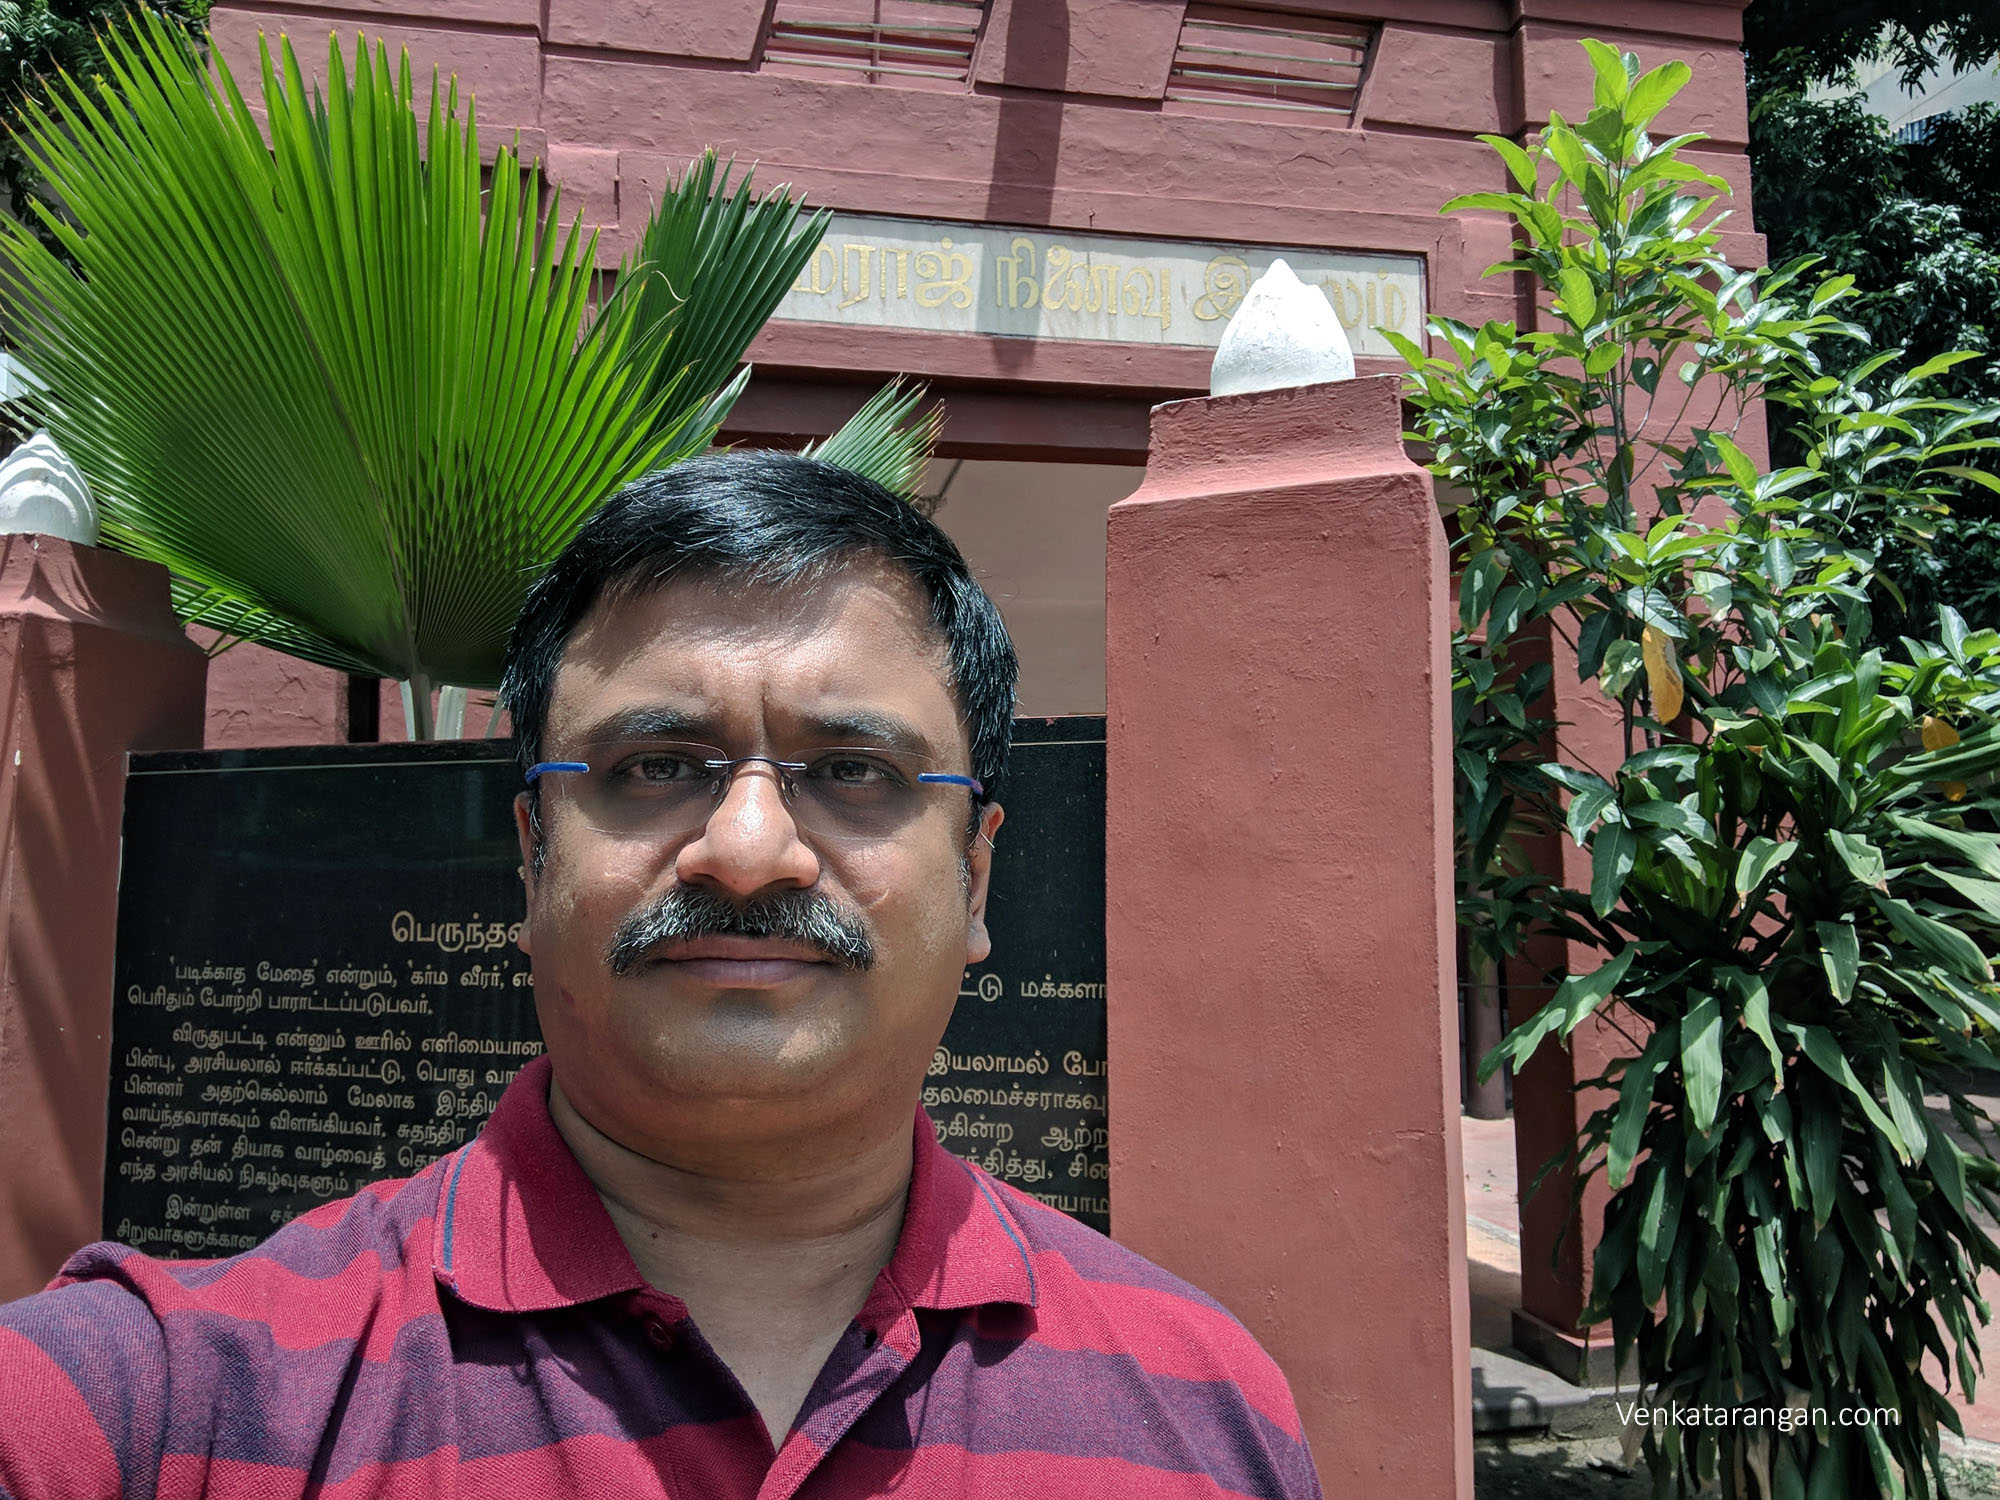 Venkatarangan in front of Kamarajar Memorial House, T.Nagar, Chennai